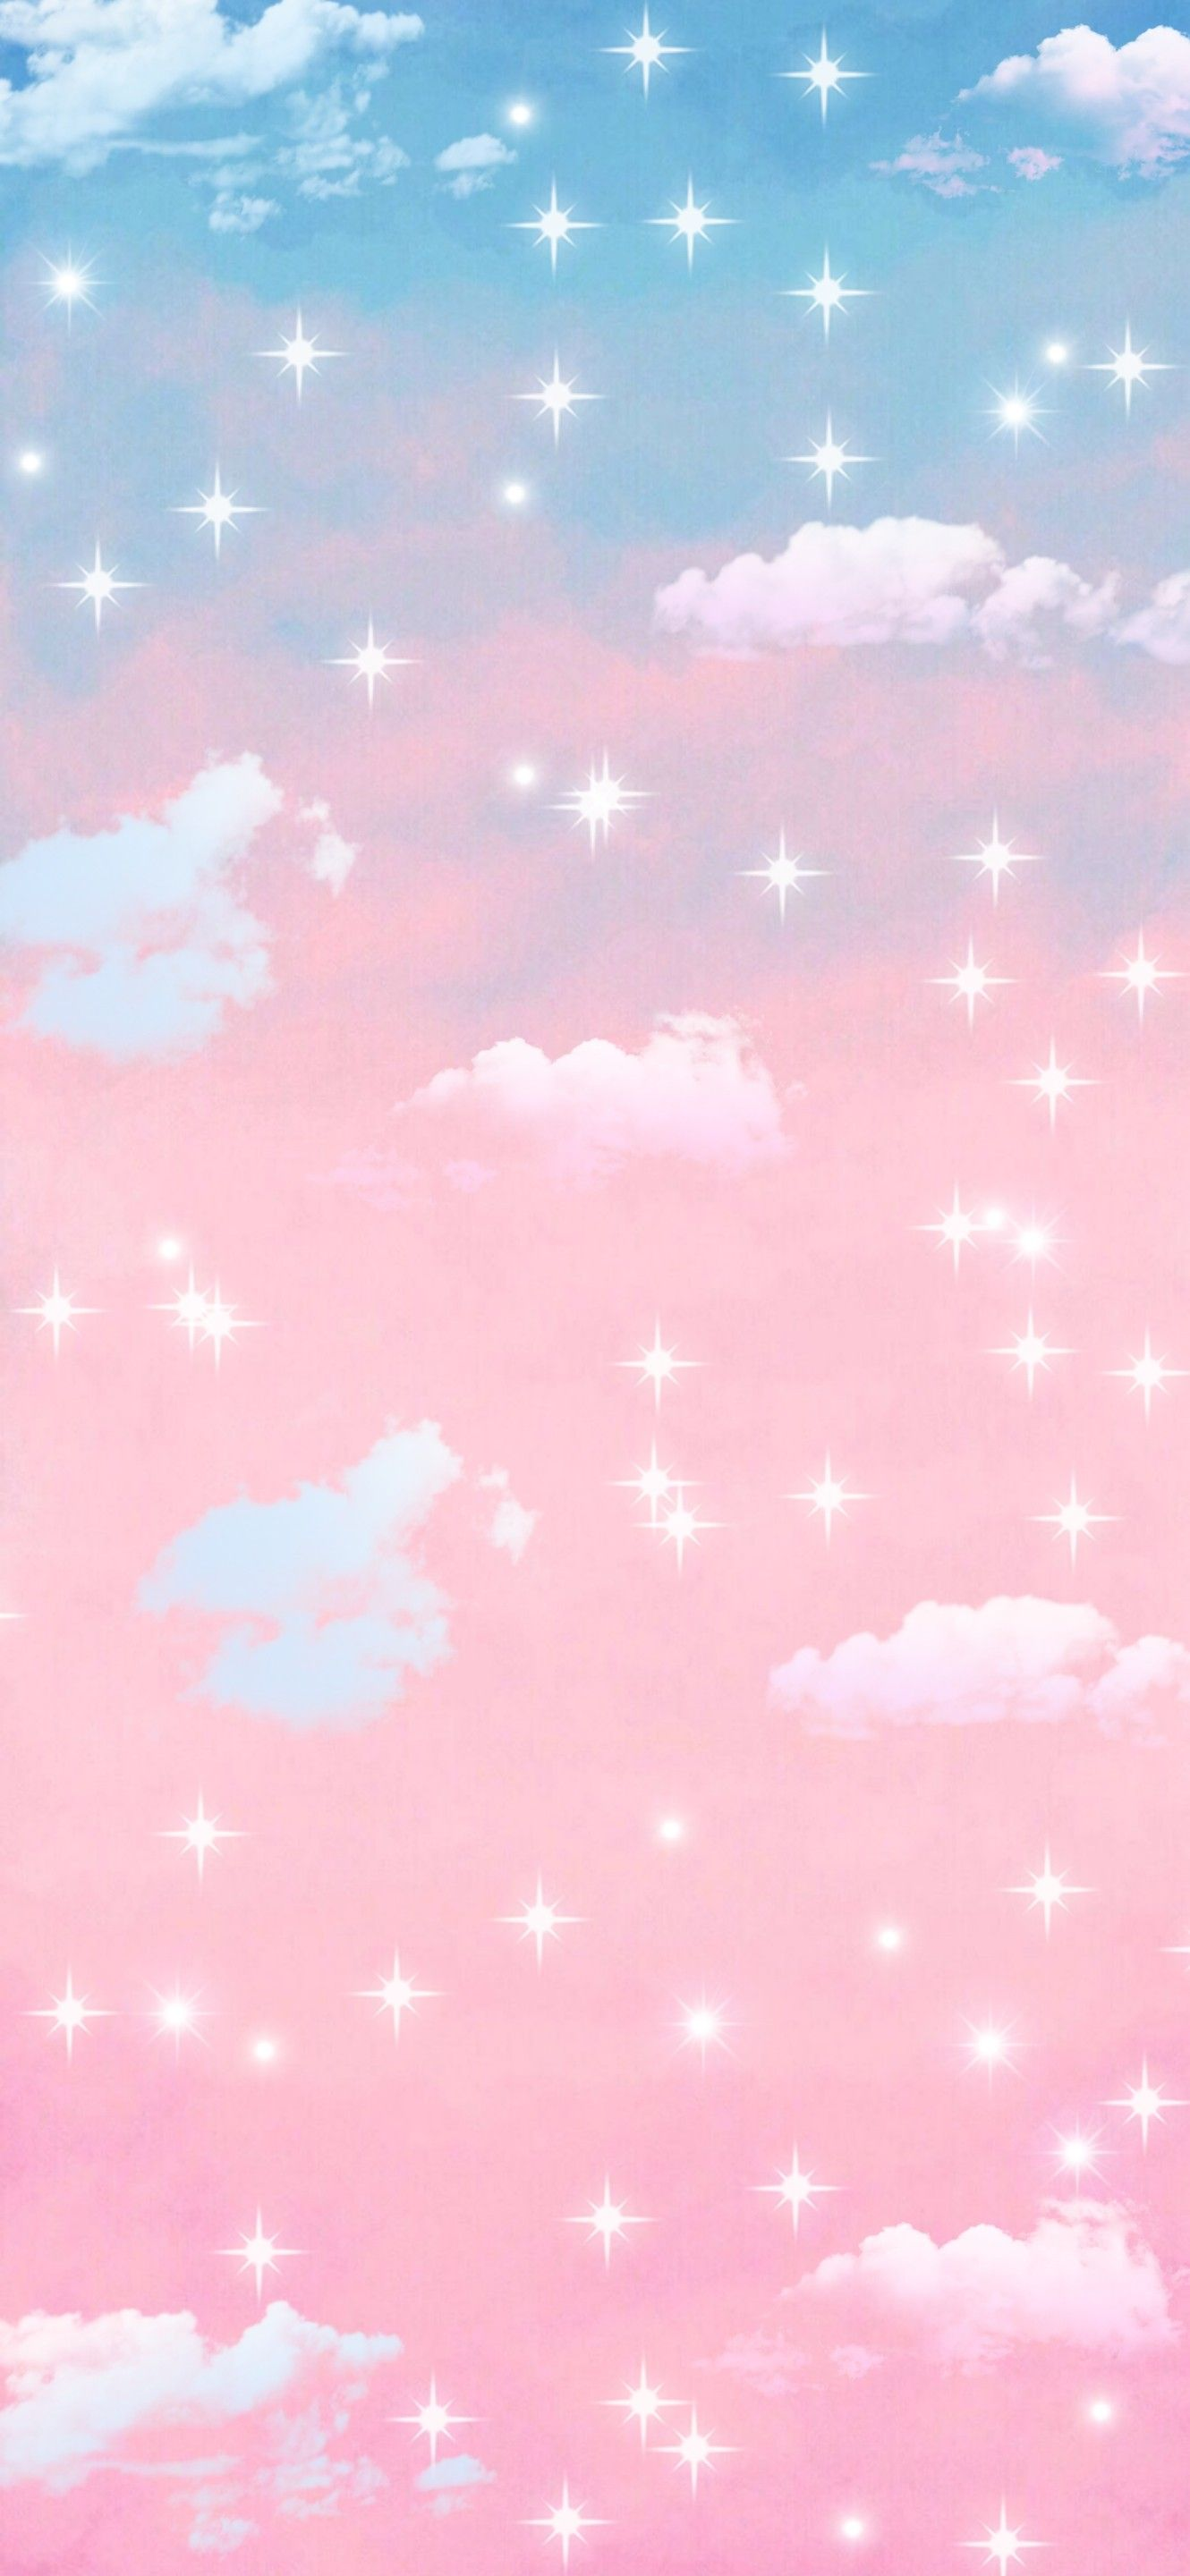 Pink And Blue Background Wallpaper Blue Background Wallpapers Aesthetic Wallpapers Star Wallpaper